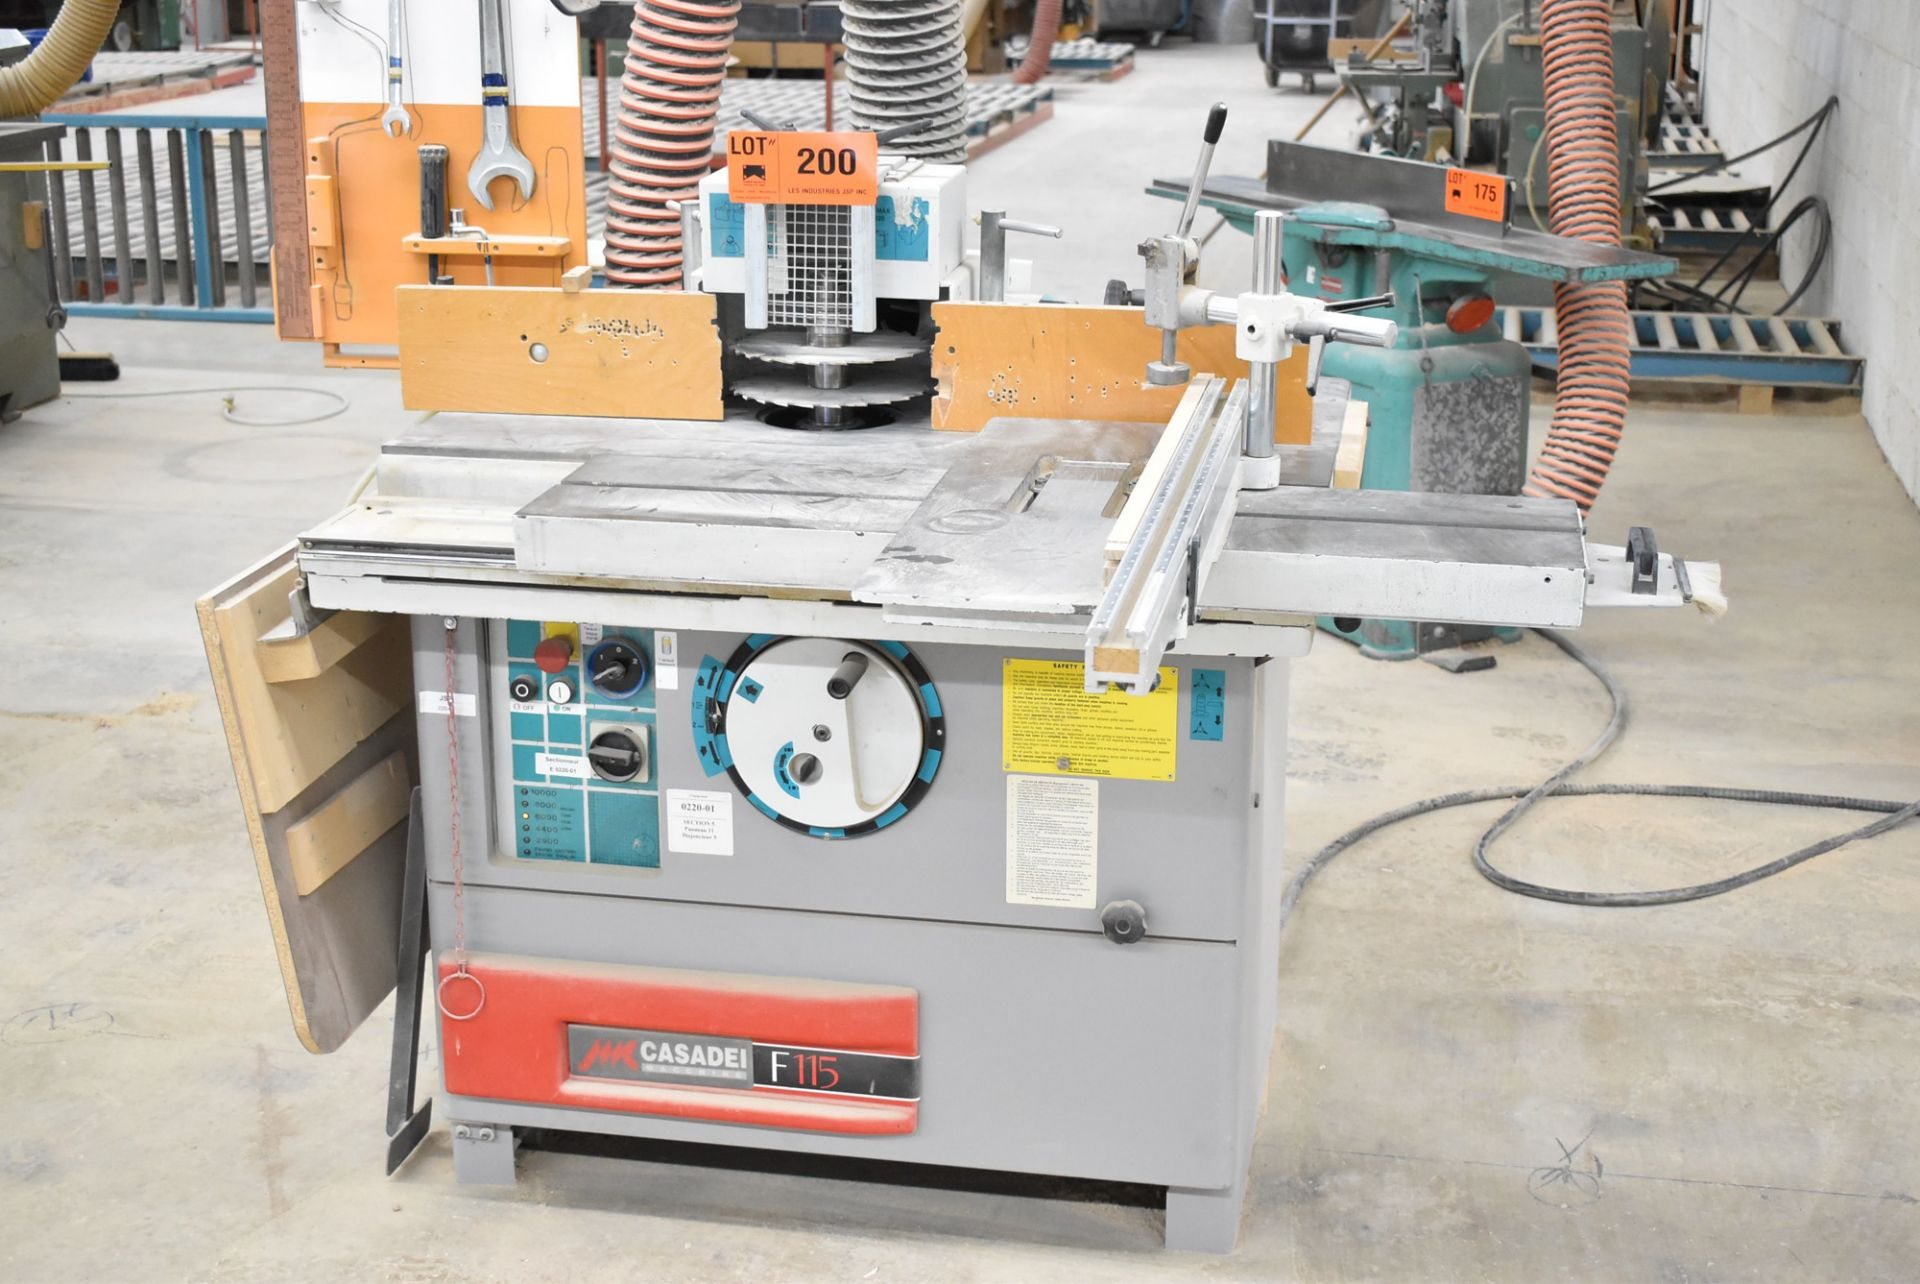 """Lot 200 - CASADEI (2000) F/115C SLIDING TABLE SHAPERS WITH 1.25"""" DIA. SPINDLE, 7"""" SPINDLE LENGTH, 8 _"""" SPINDLE"""